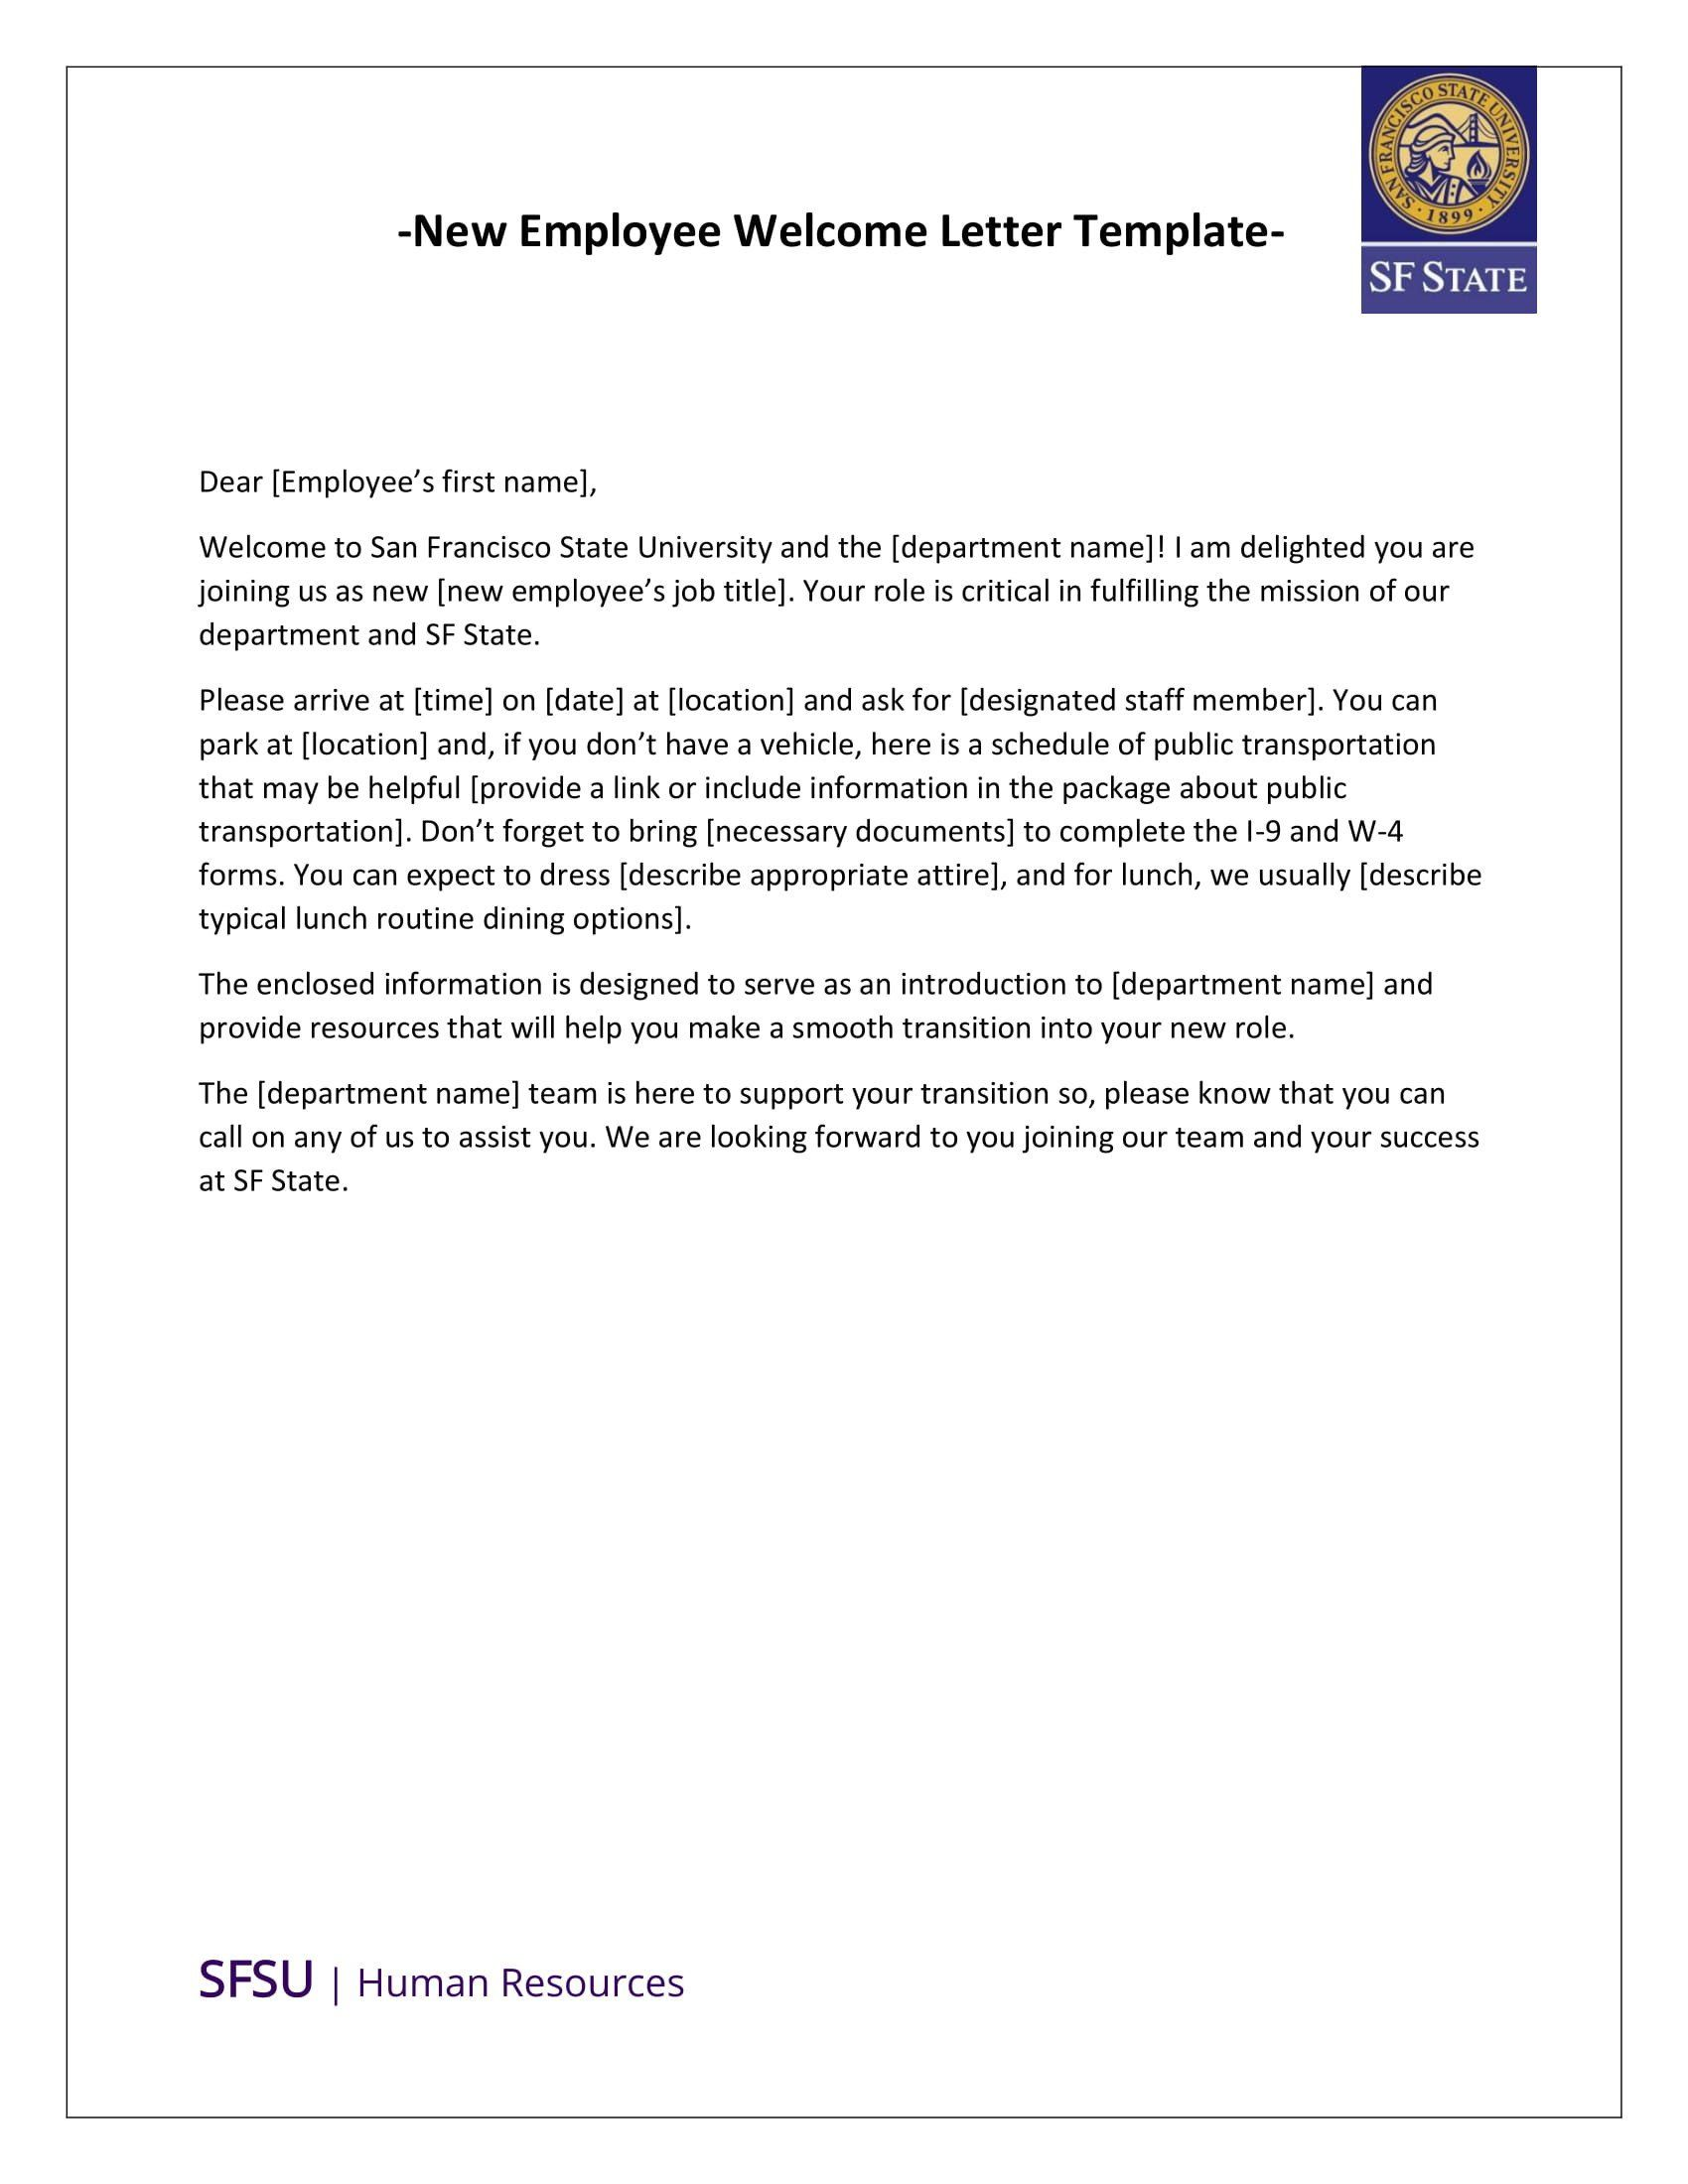 Welcome To Our Team Letter from i.pinimg.com